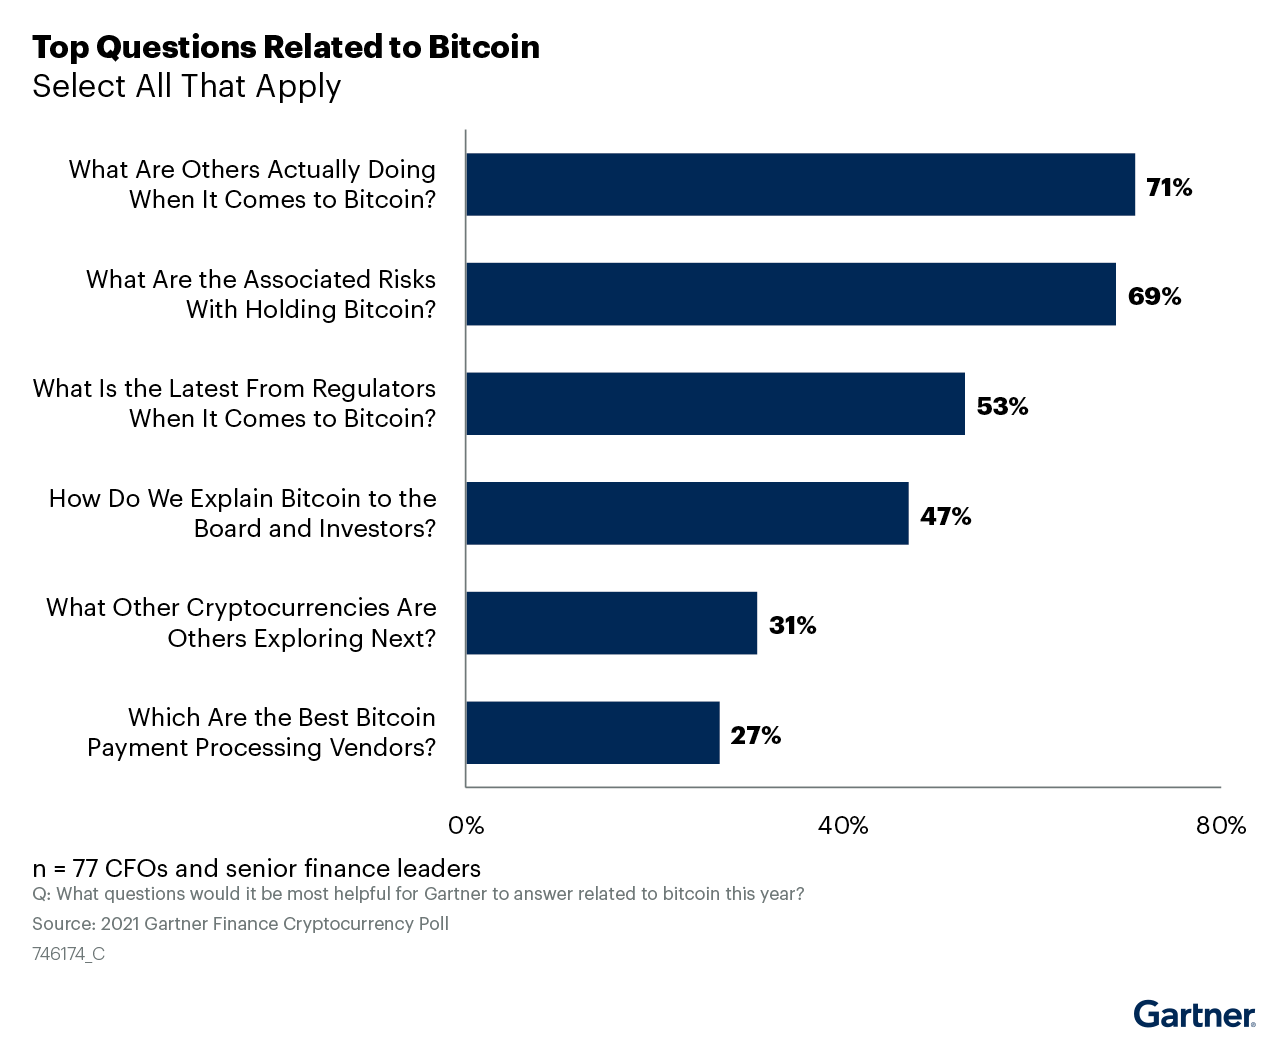 Figure 3. Top Questions Related to Bitcoin